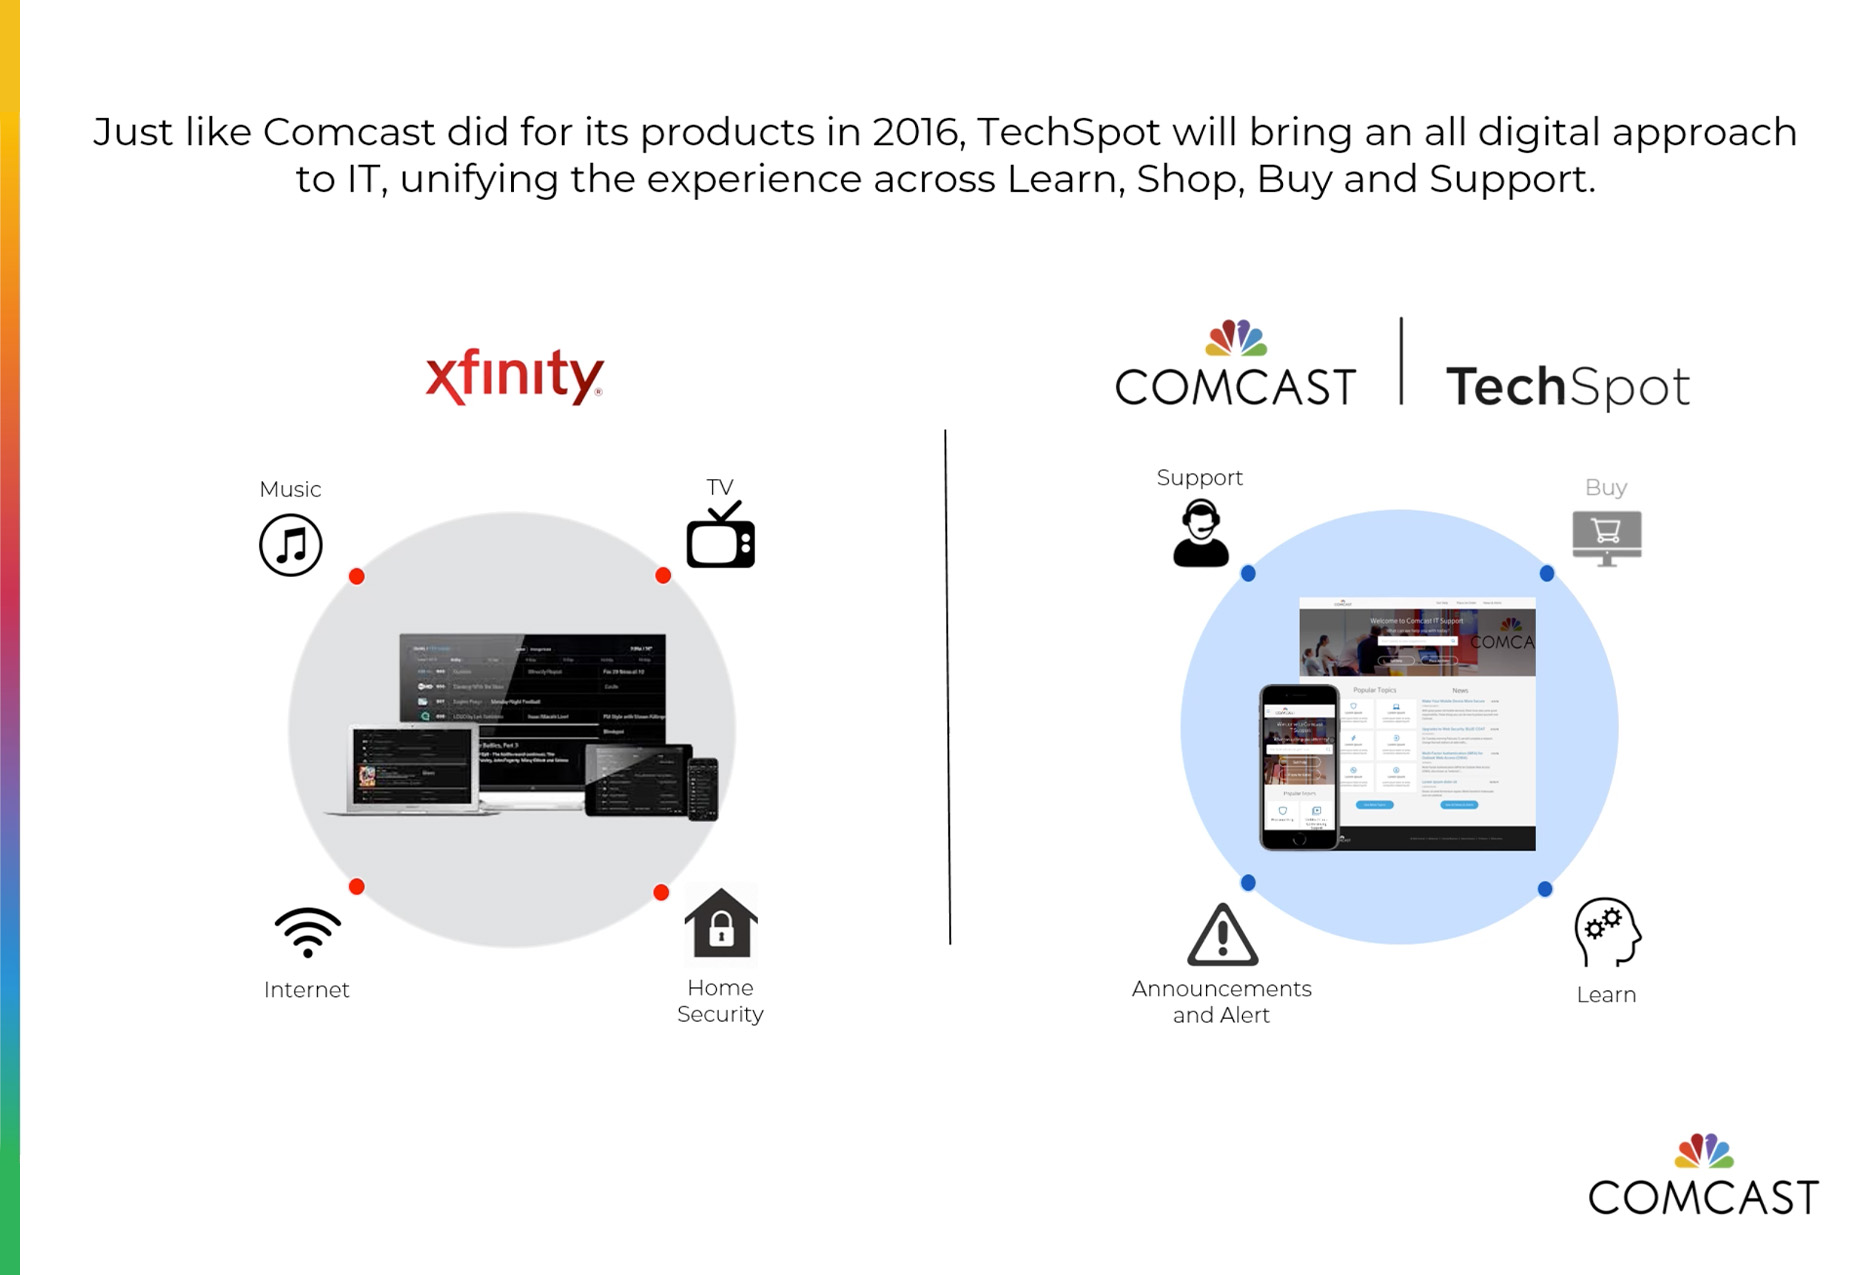 Comcast TechSpot